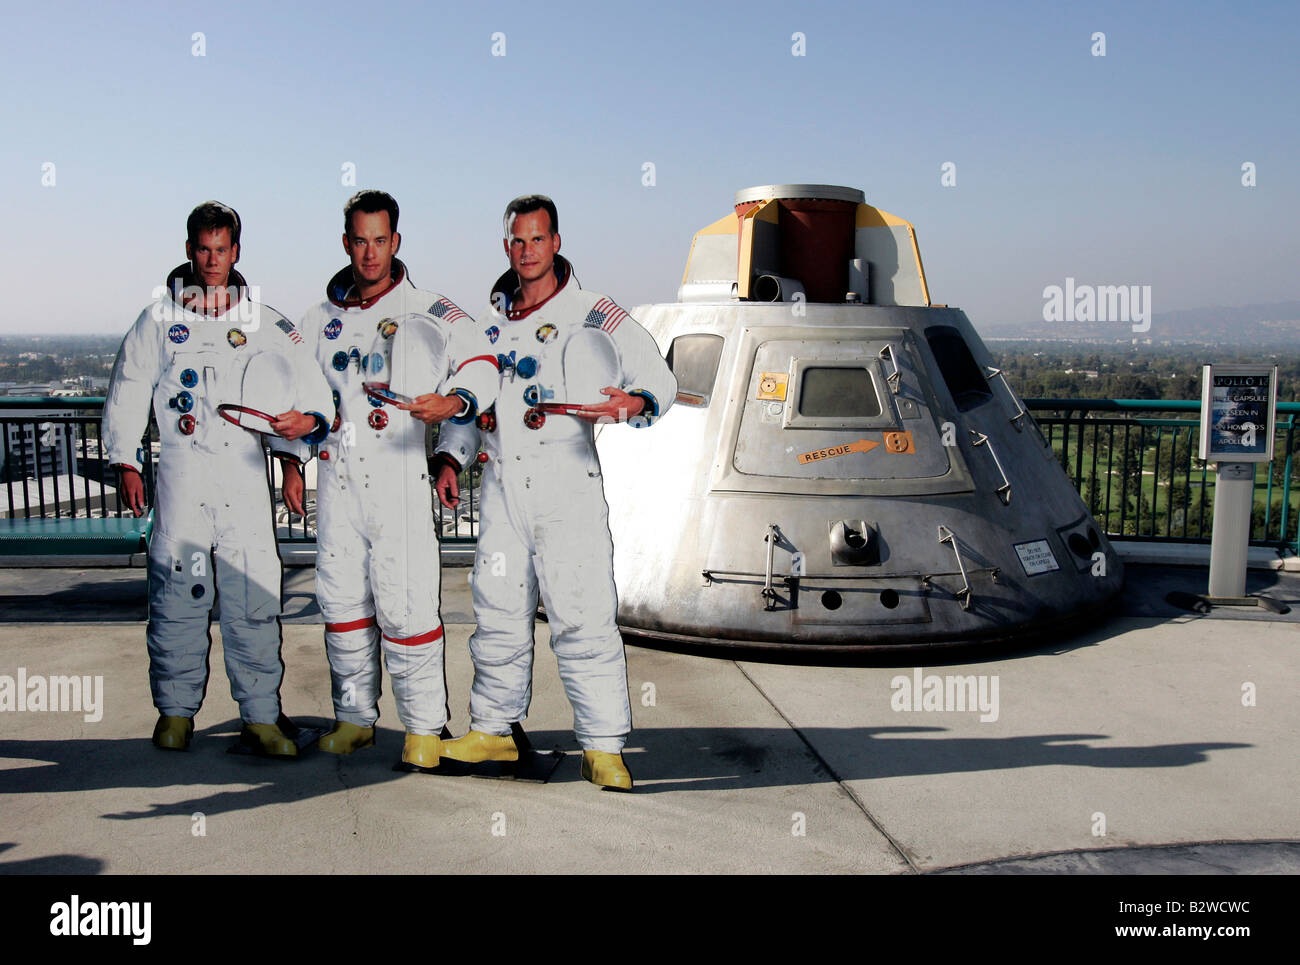 Image result for apollo 13 images